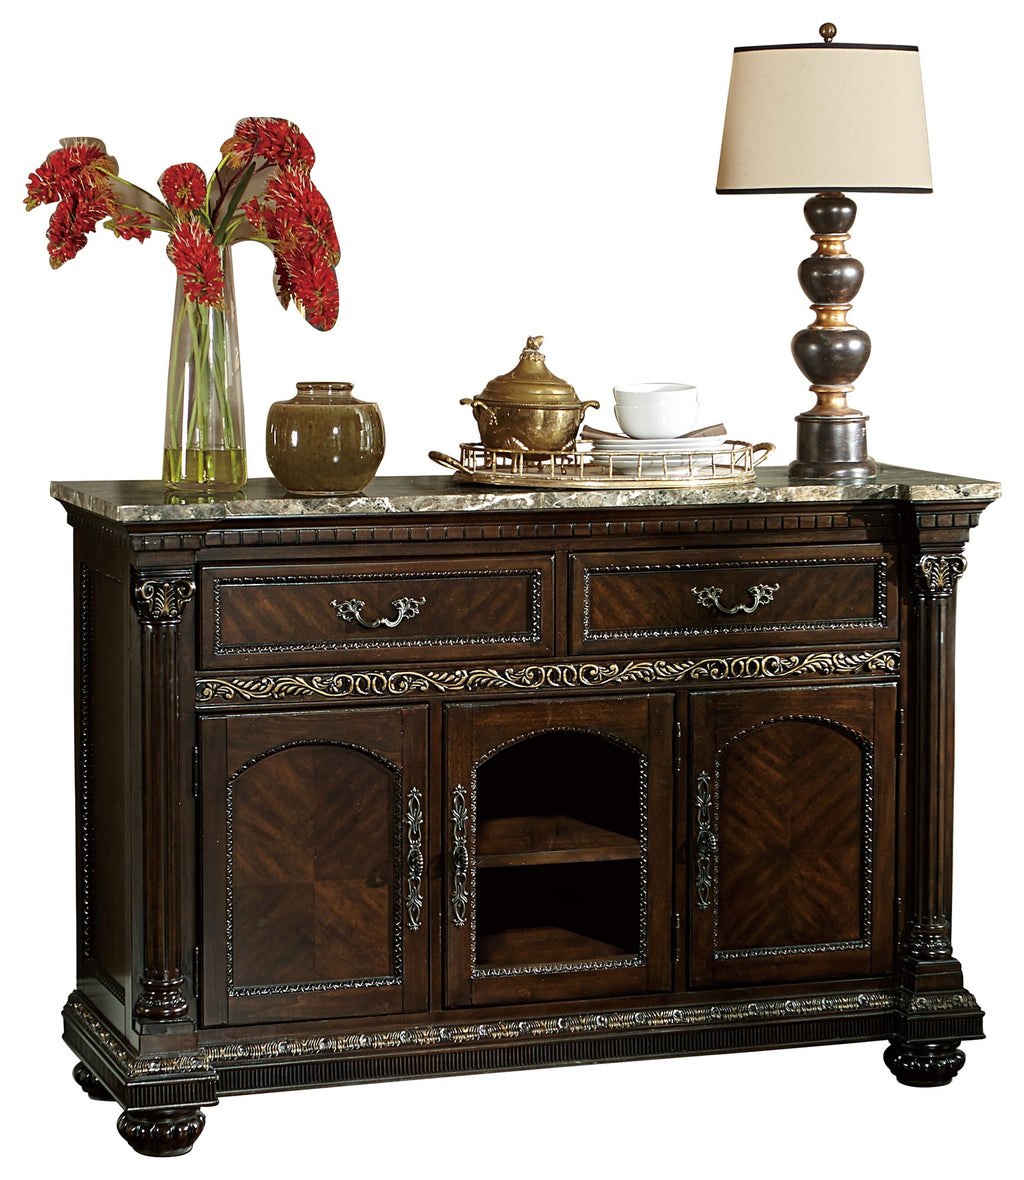 Homelegance Russian Hill server in Warm Cherry